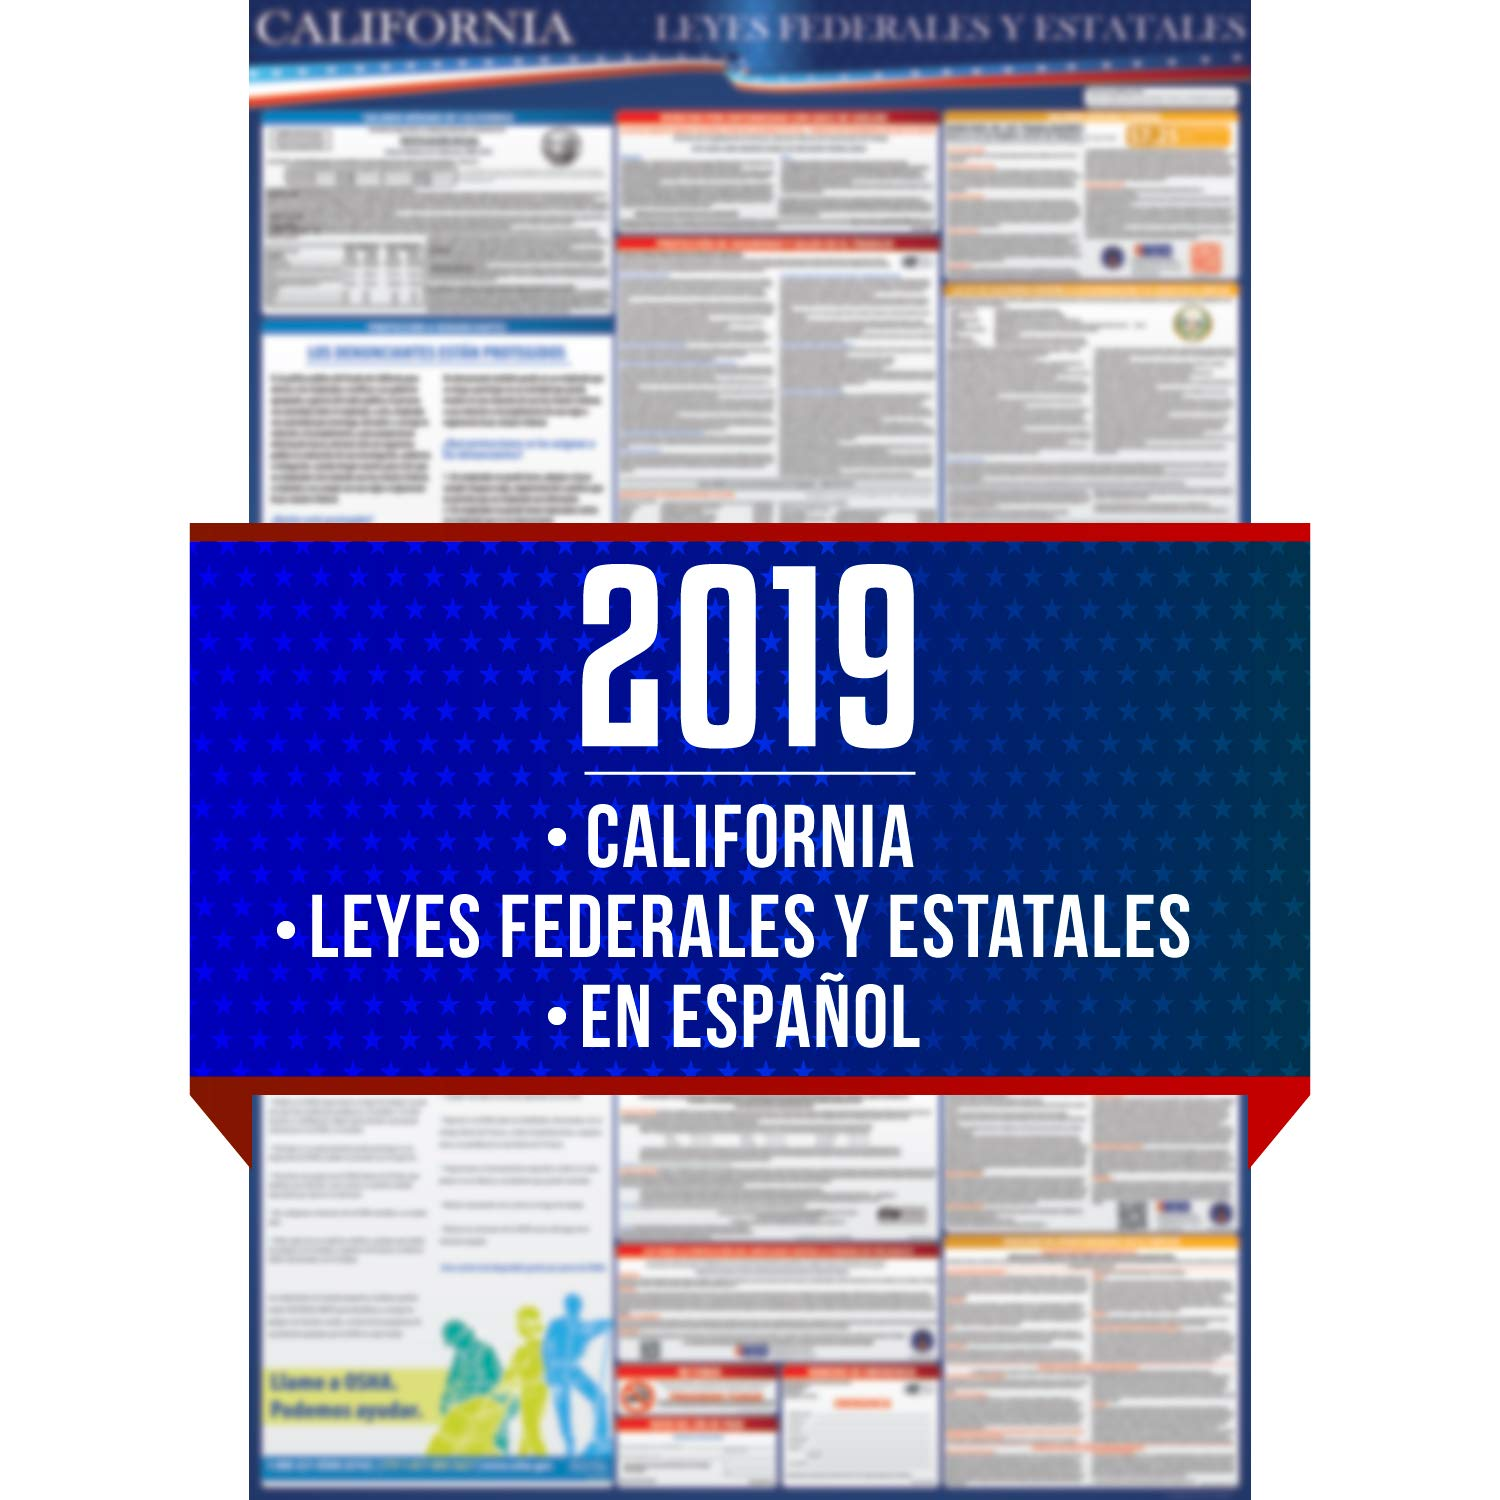 2019 Spanish California State and Federal Labor Laws Poster - OSHA Workplace Compliant 24'' x 36'' - All in One Required Posting - UV Coated - En Español by COMPLIANCE AUDIT CENTER